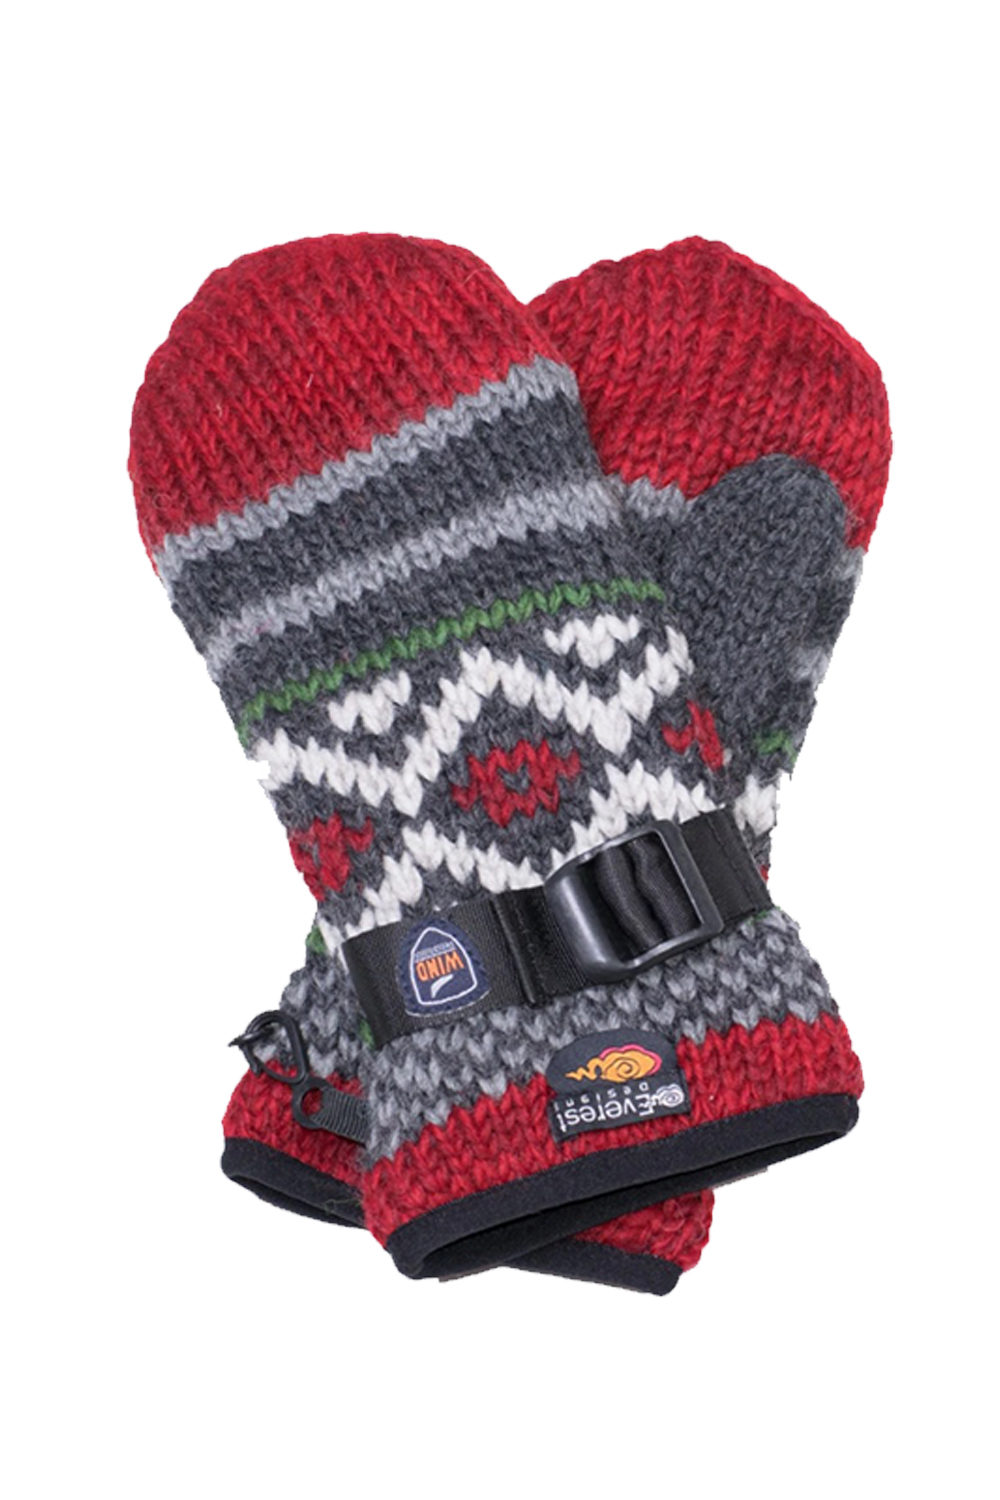 Everest Designs TechMitten